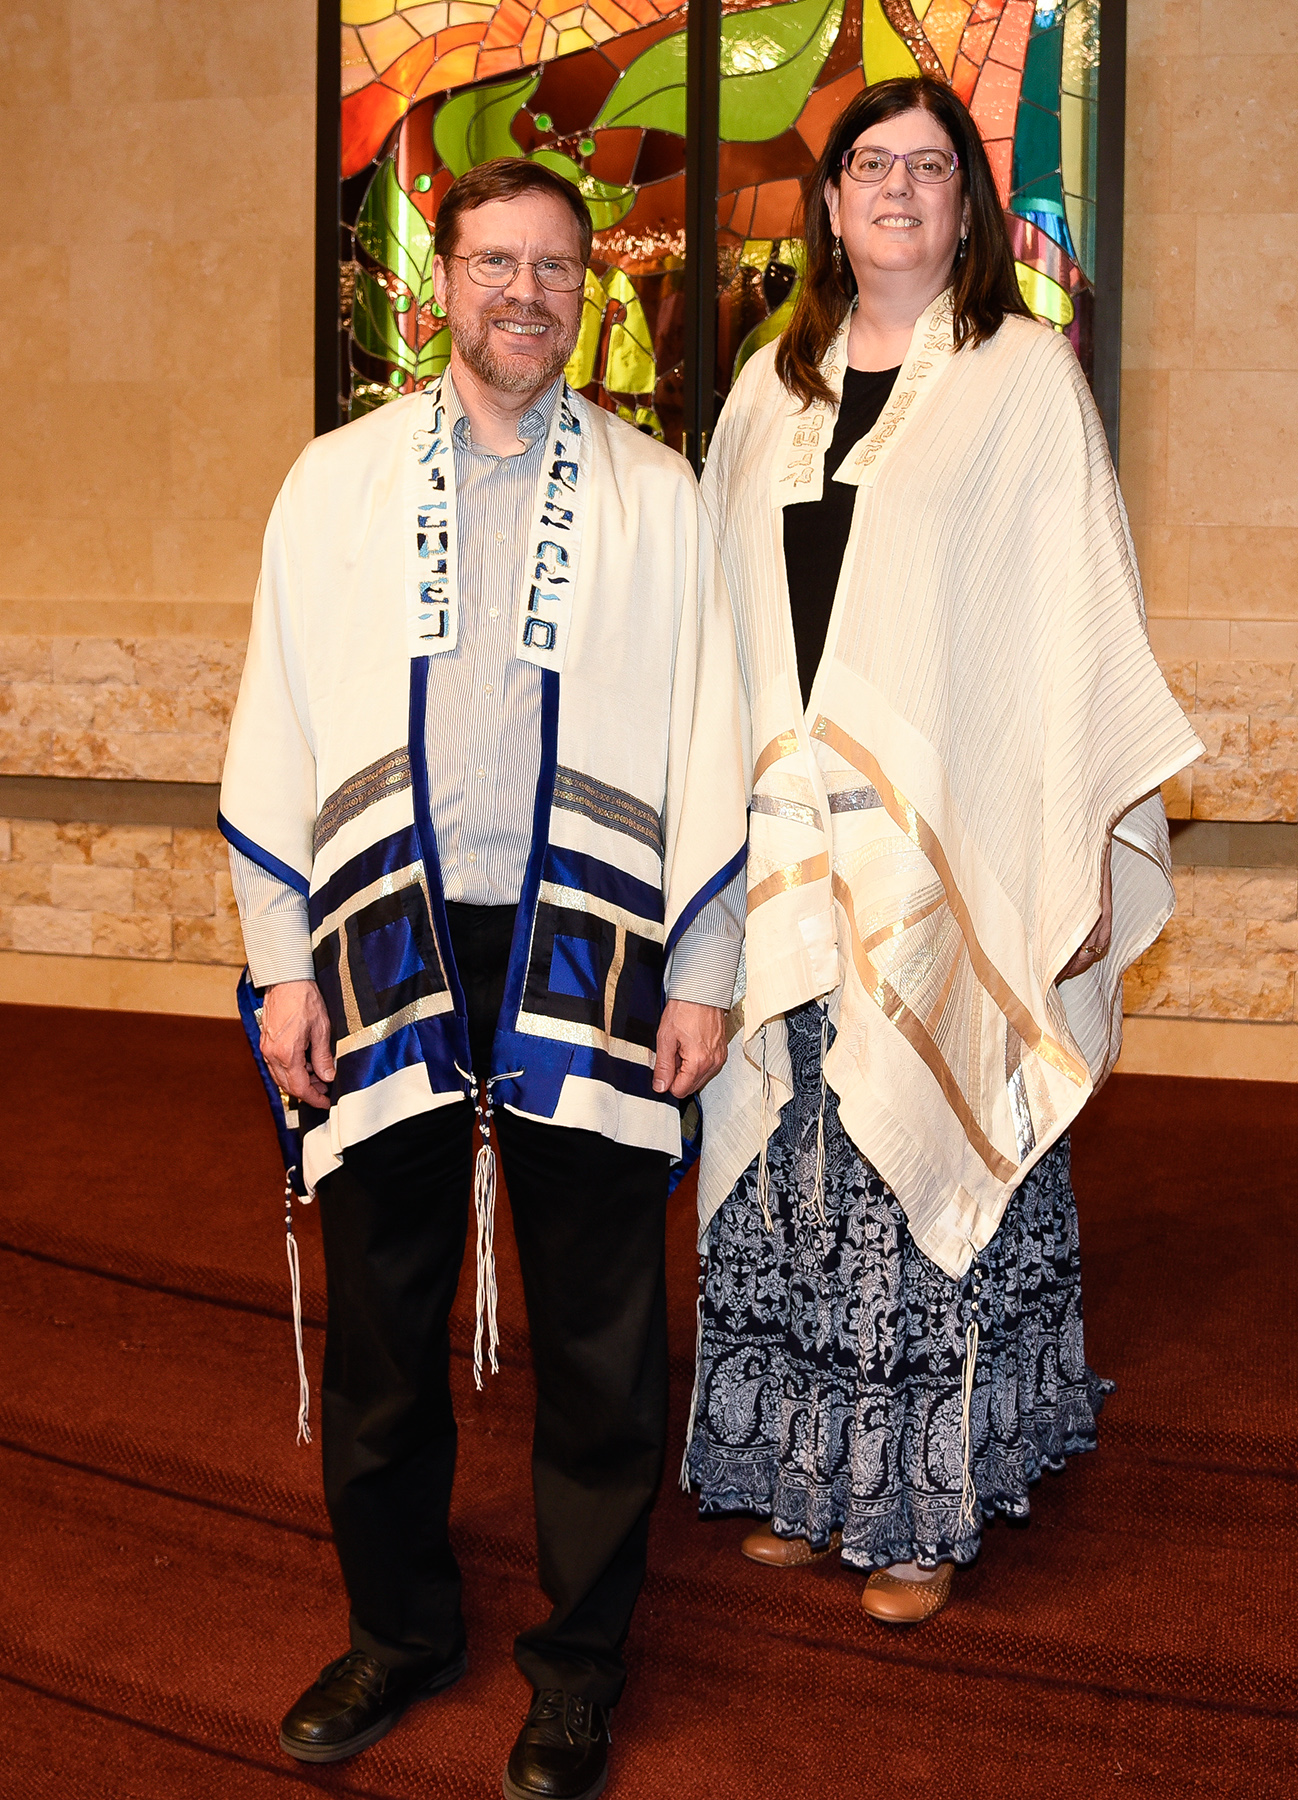 Tallit-Bergers joint